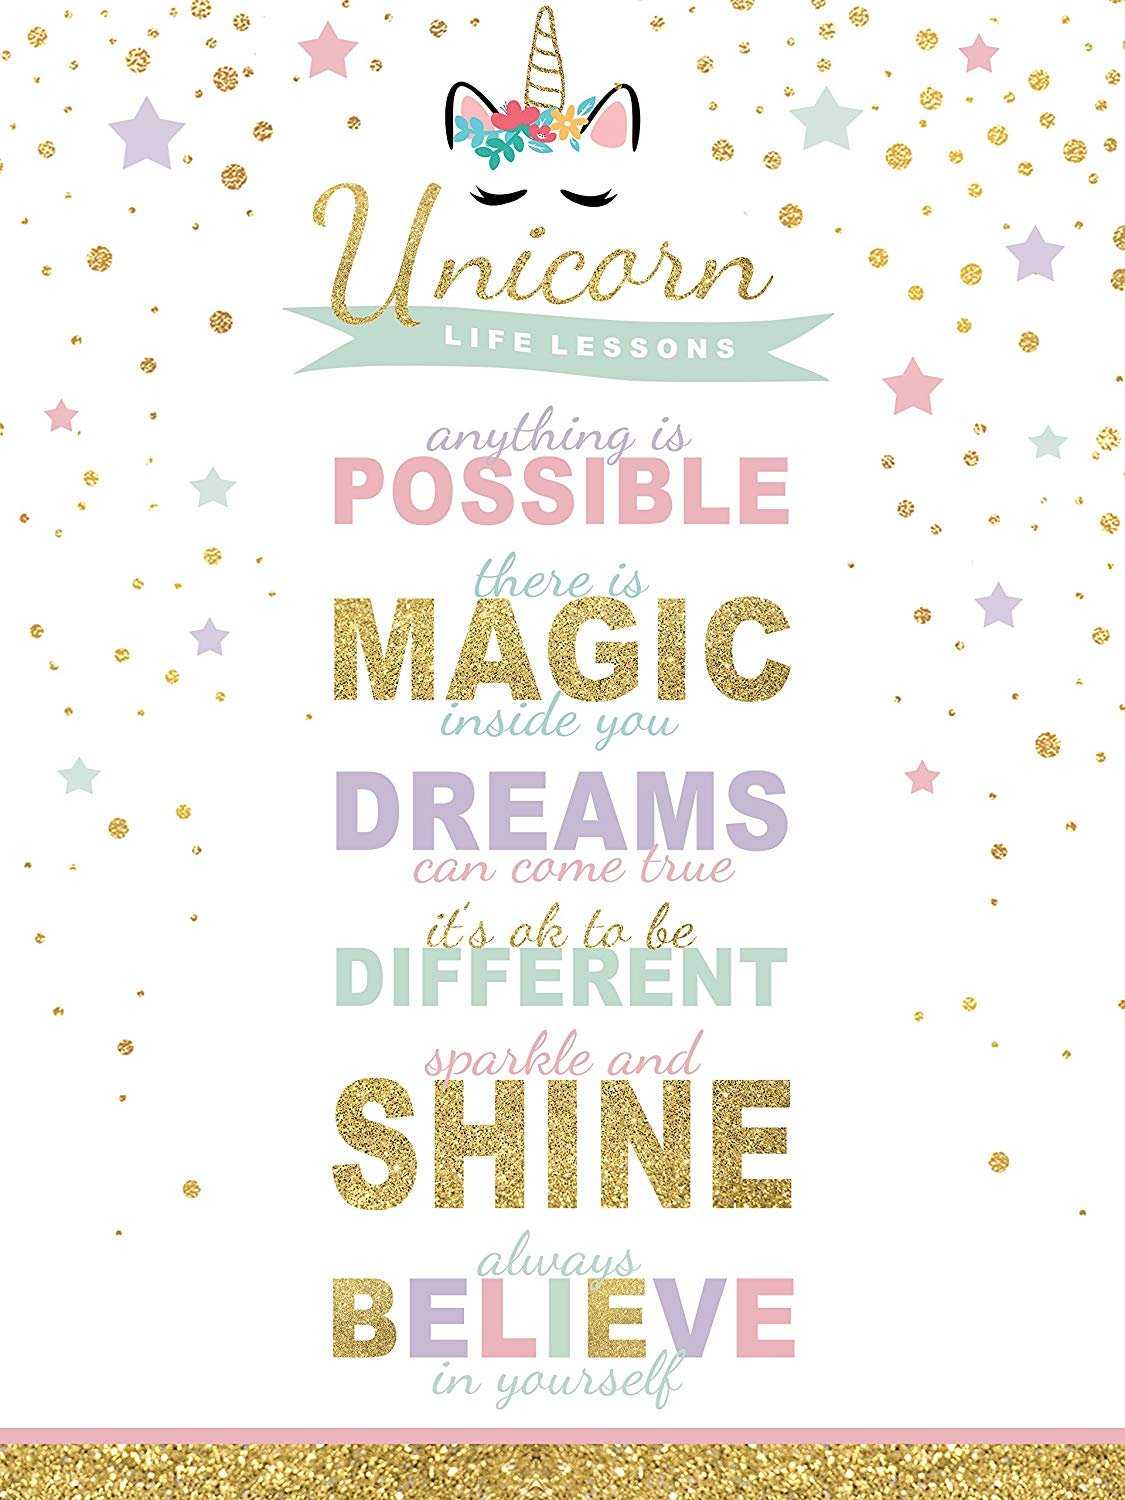 wallsthatspeak Rainbow Sparkle Unicorn Canvas 12x16 Inch Girl's Room Nursery Wall Decor 3